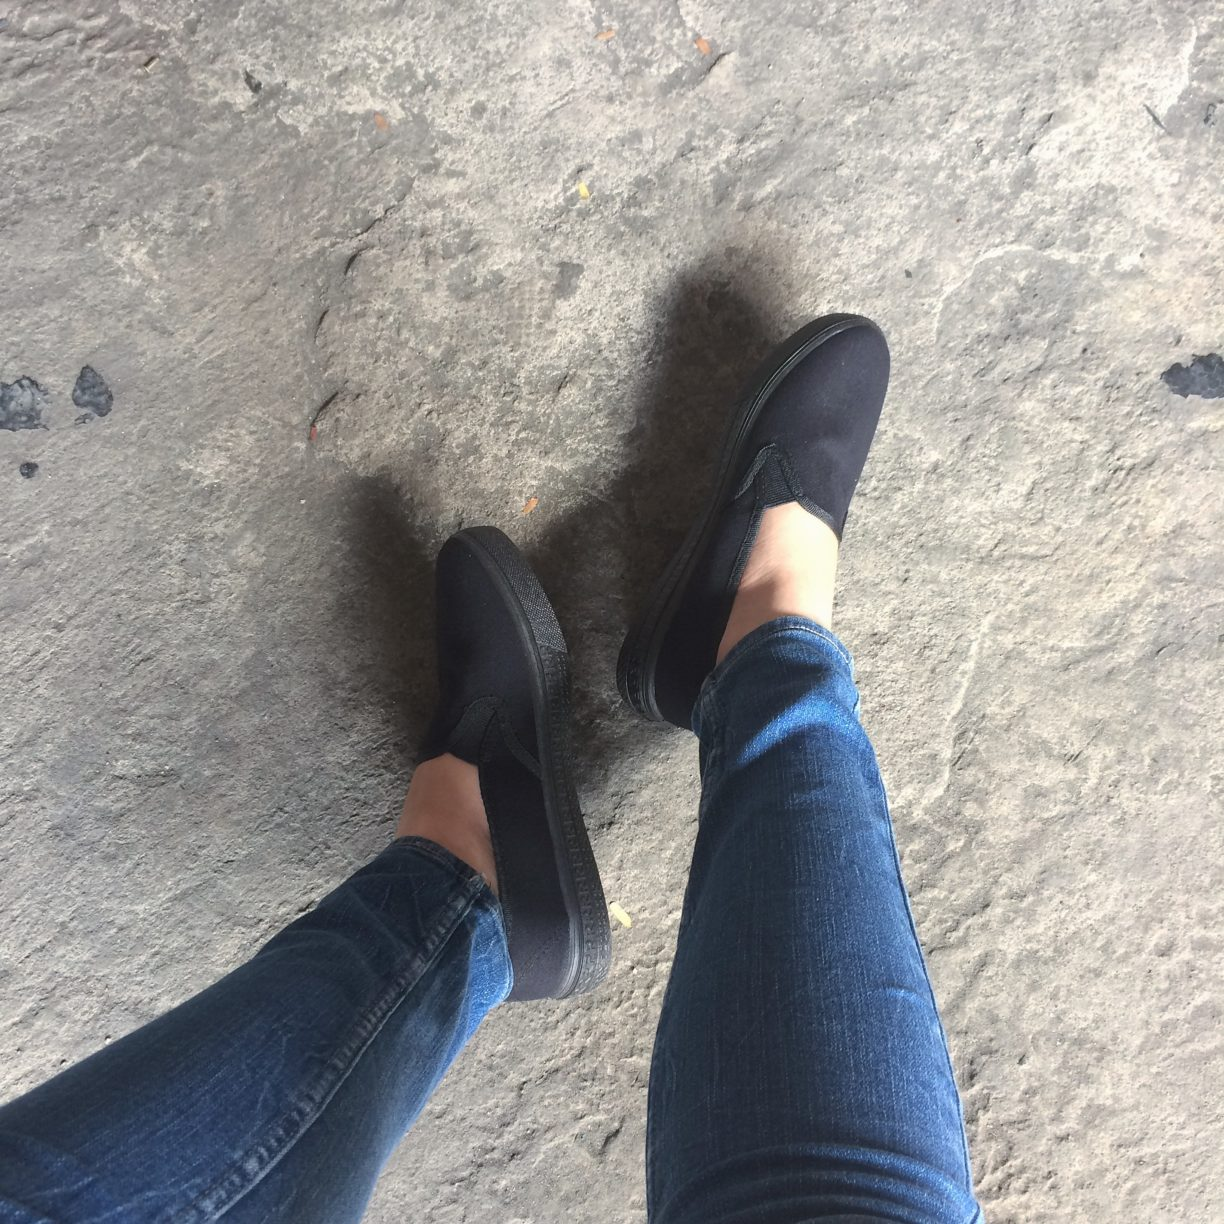 Wearing Shoes 2